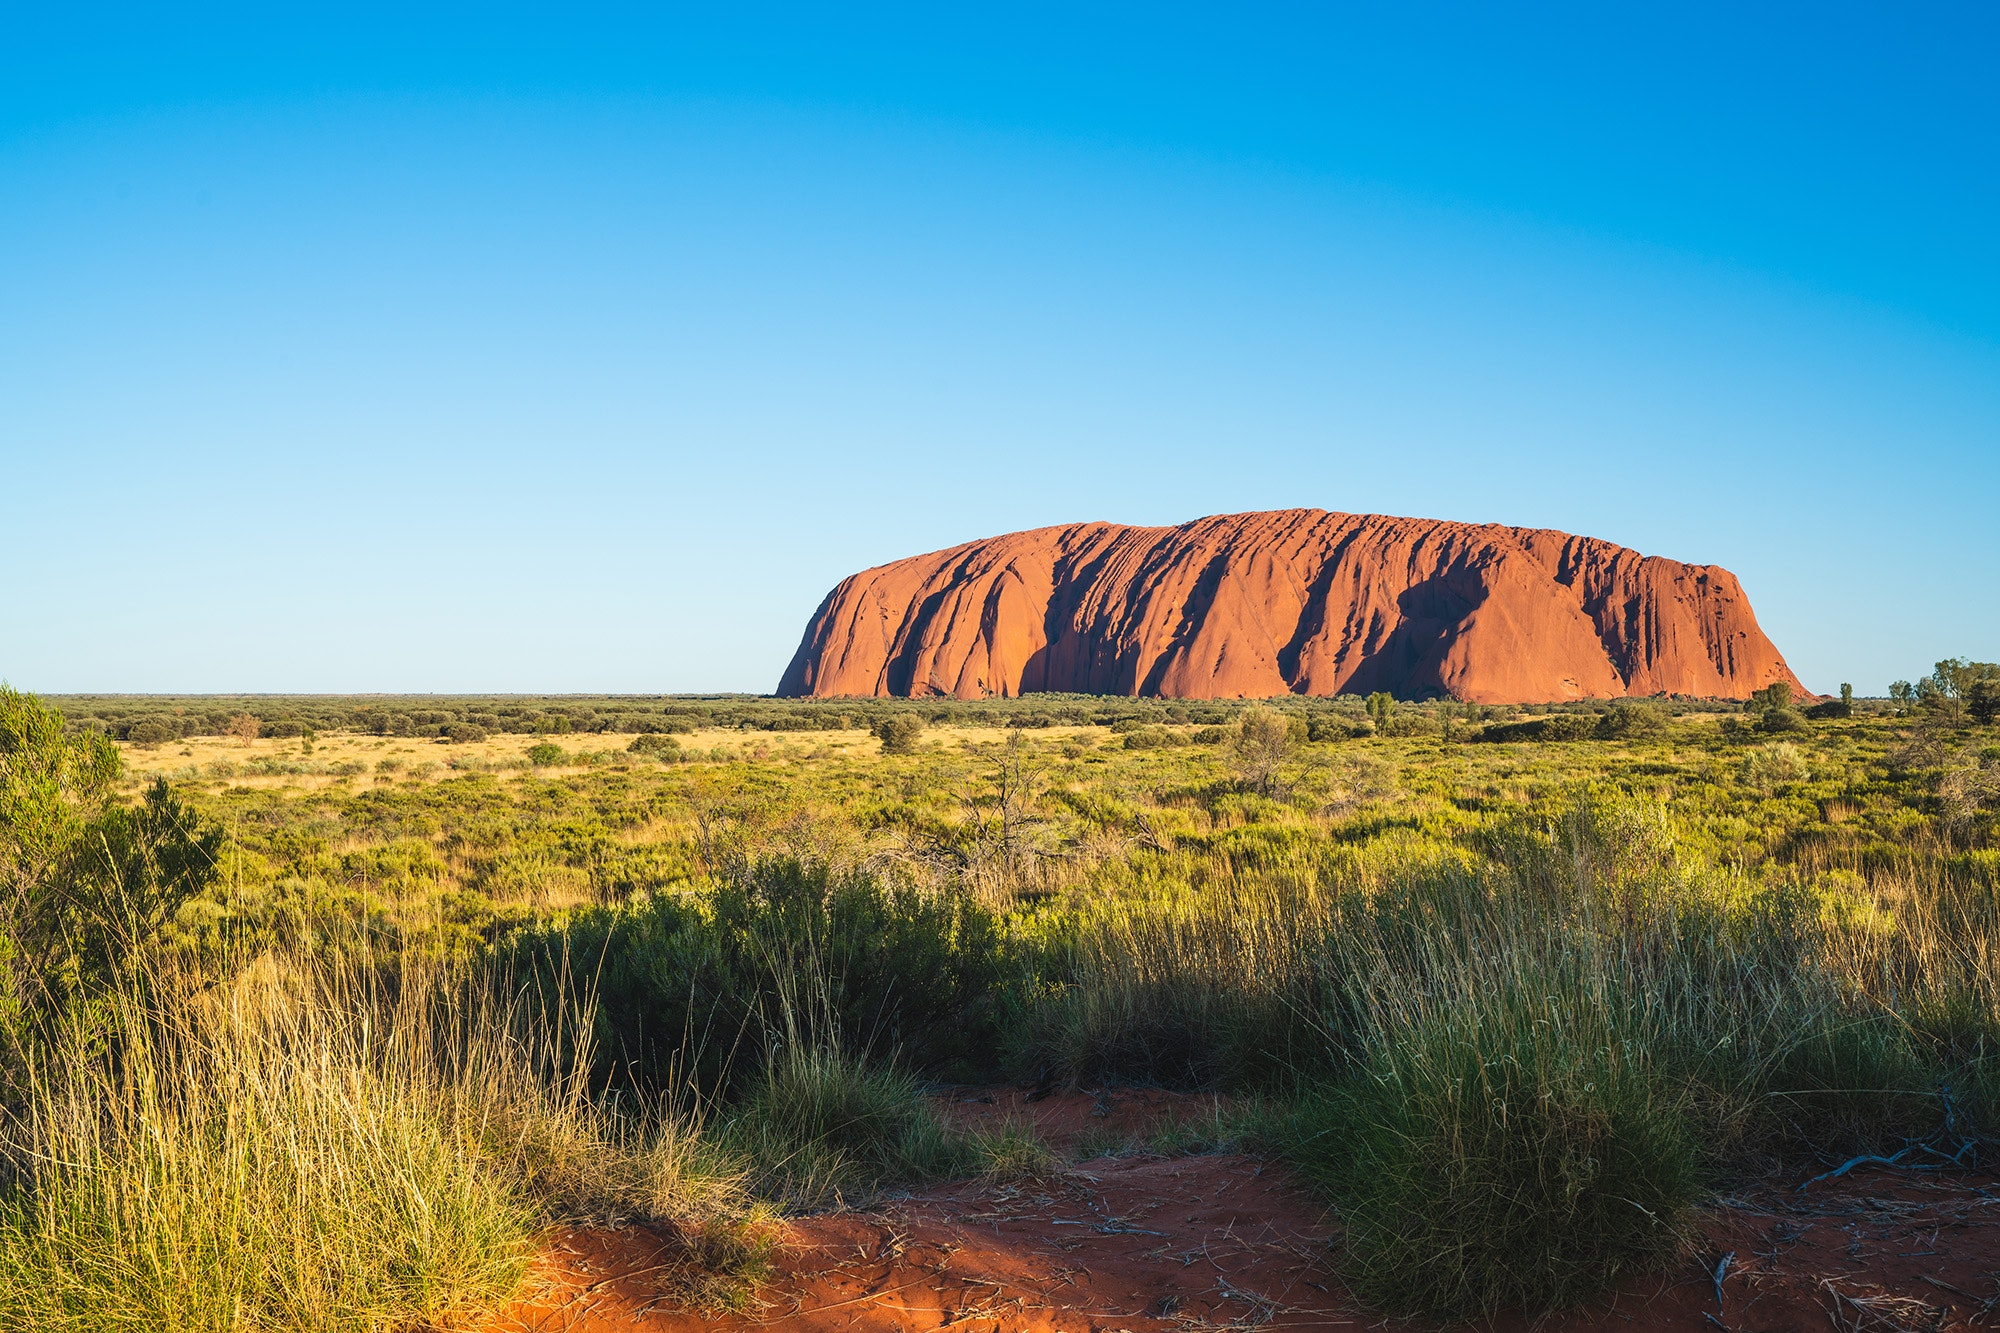 Ranger-lead tours around Uluru offer adventure-seekers insight into the geologic and cultural history of the rock.